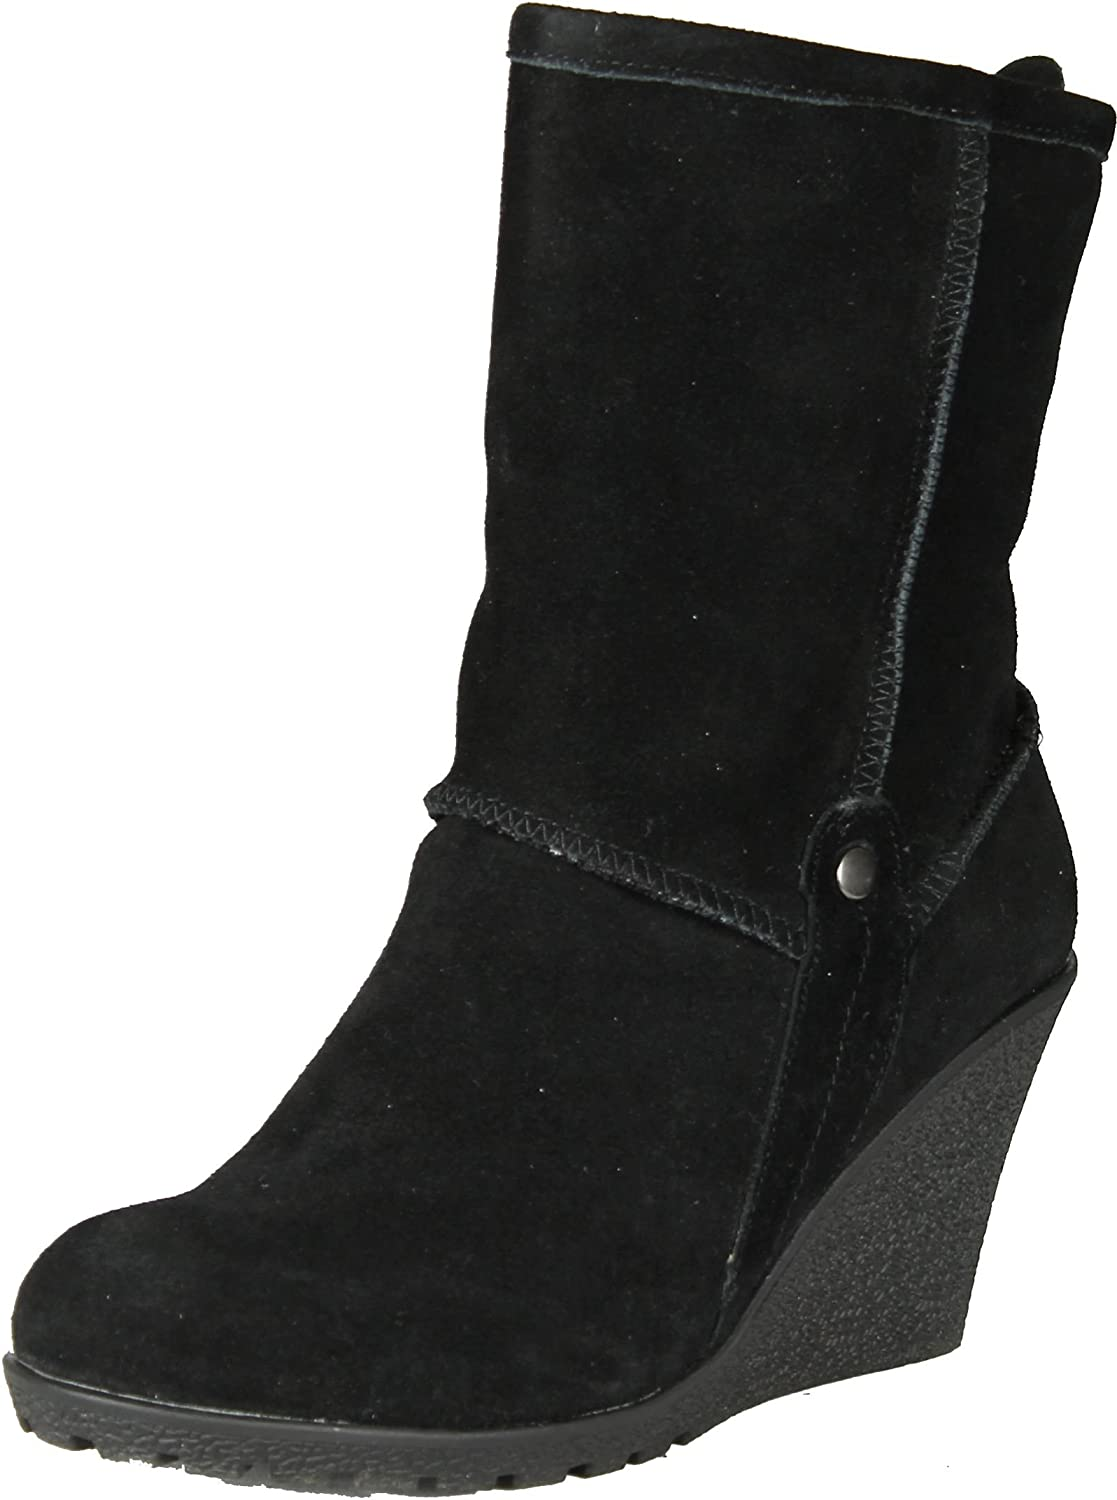 GCNY Good Choice Womens Luxe Fashion Wedge Boots